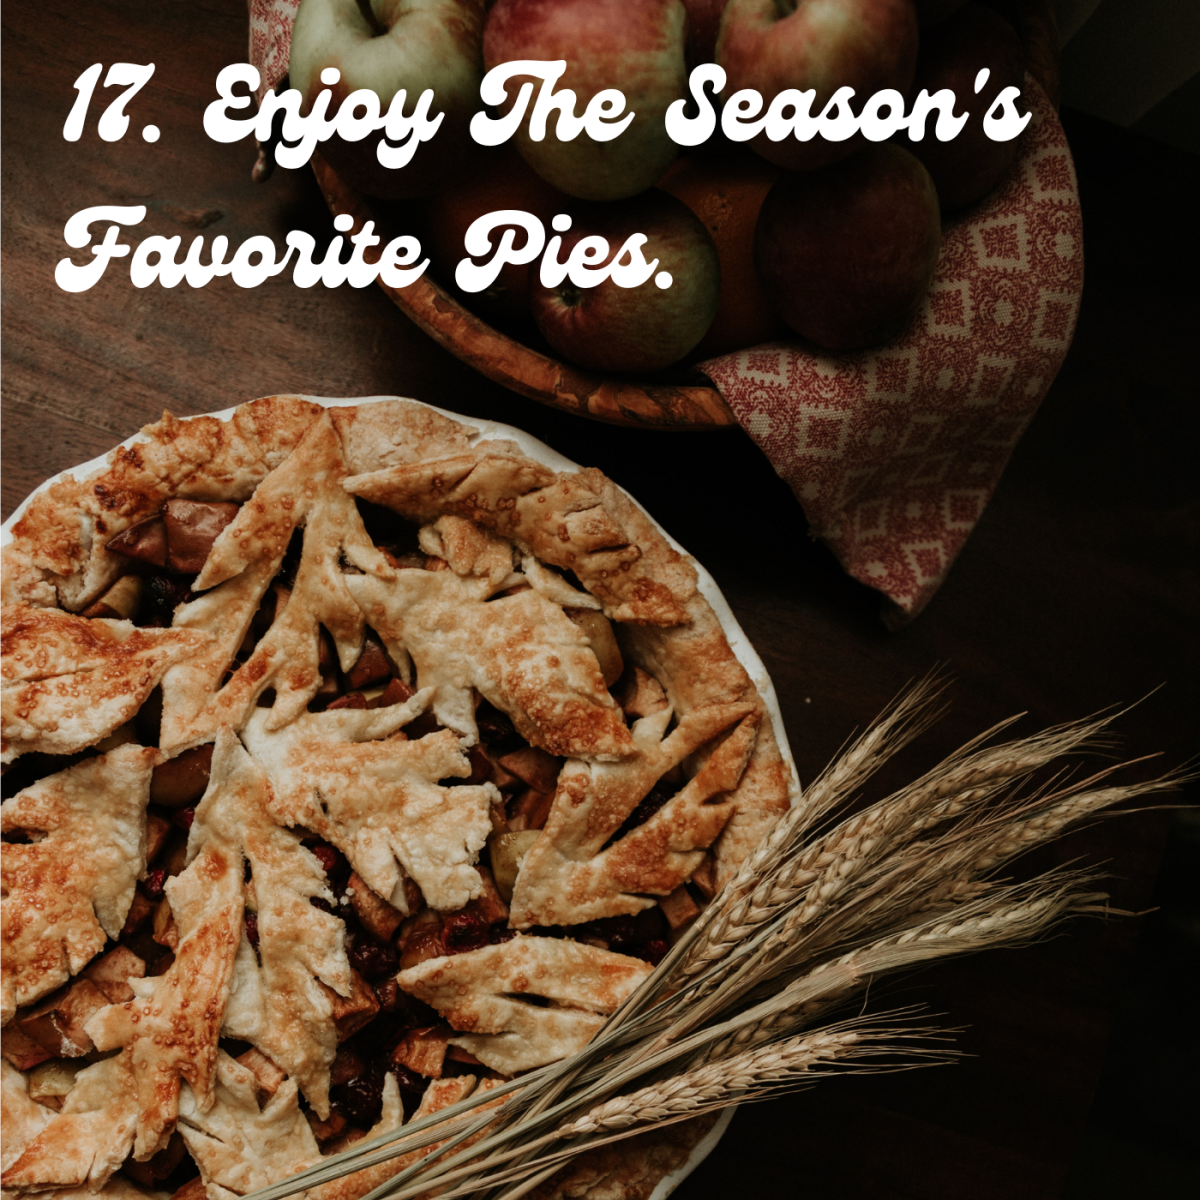 17. Enjoy the season's favorite pies.